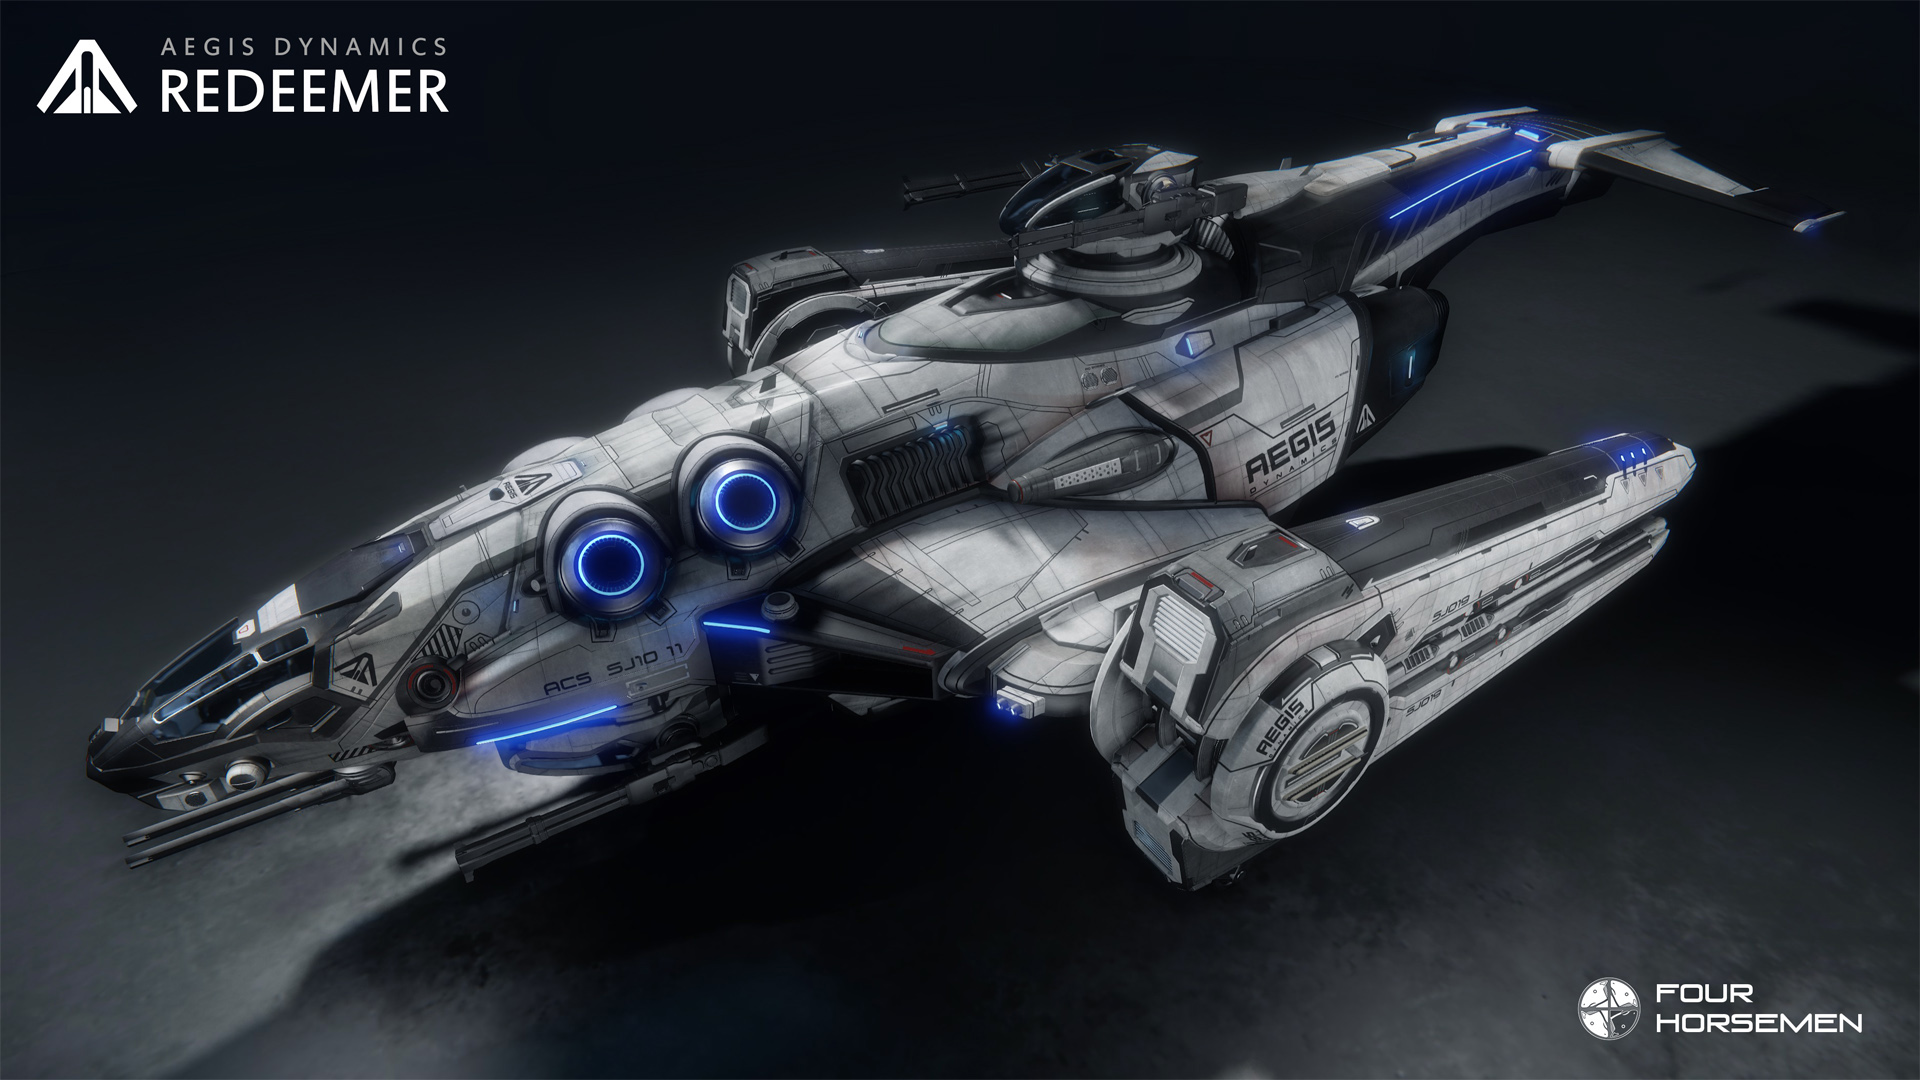 Aegis Dynamics Redeemer - Final design